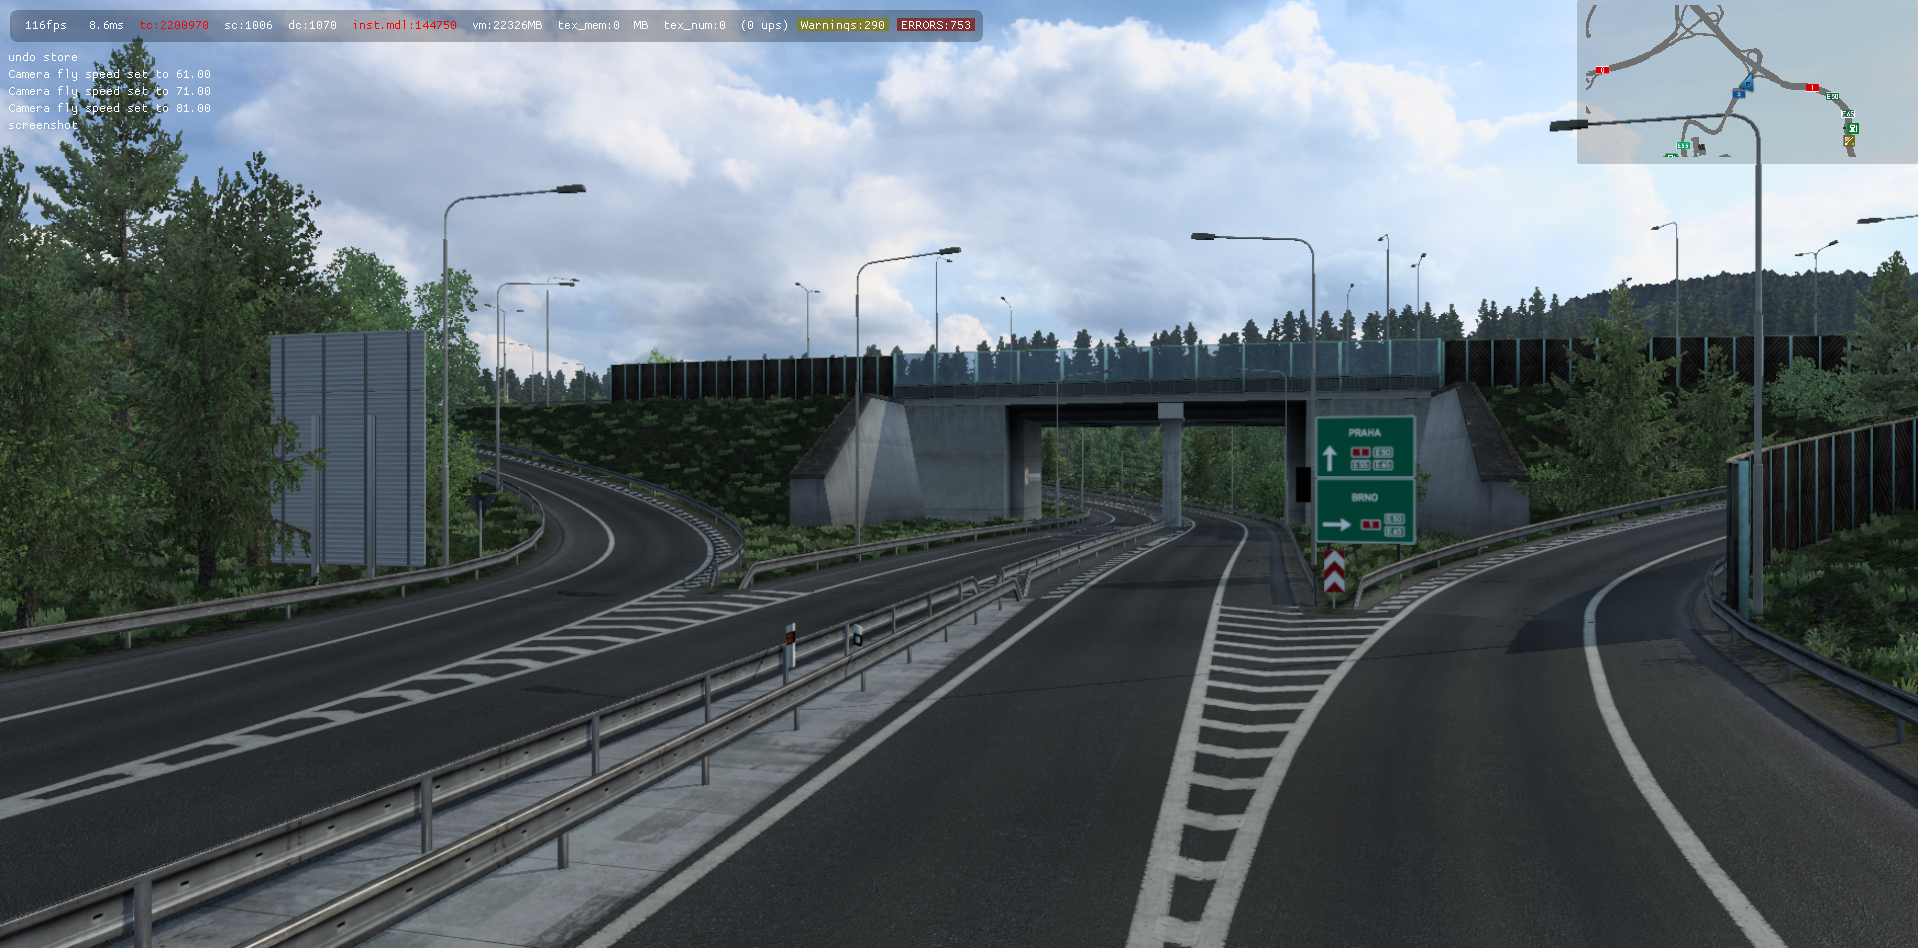 ets2_20210725_234415_00.png